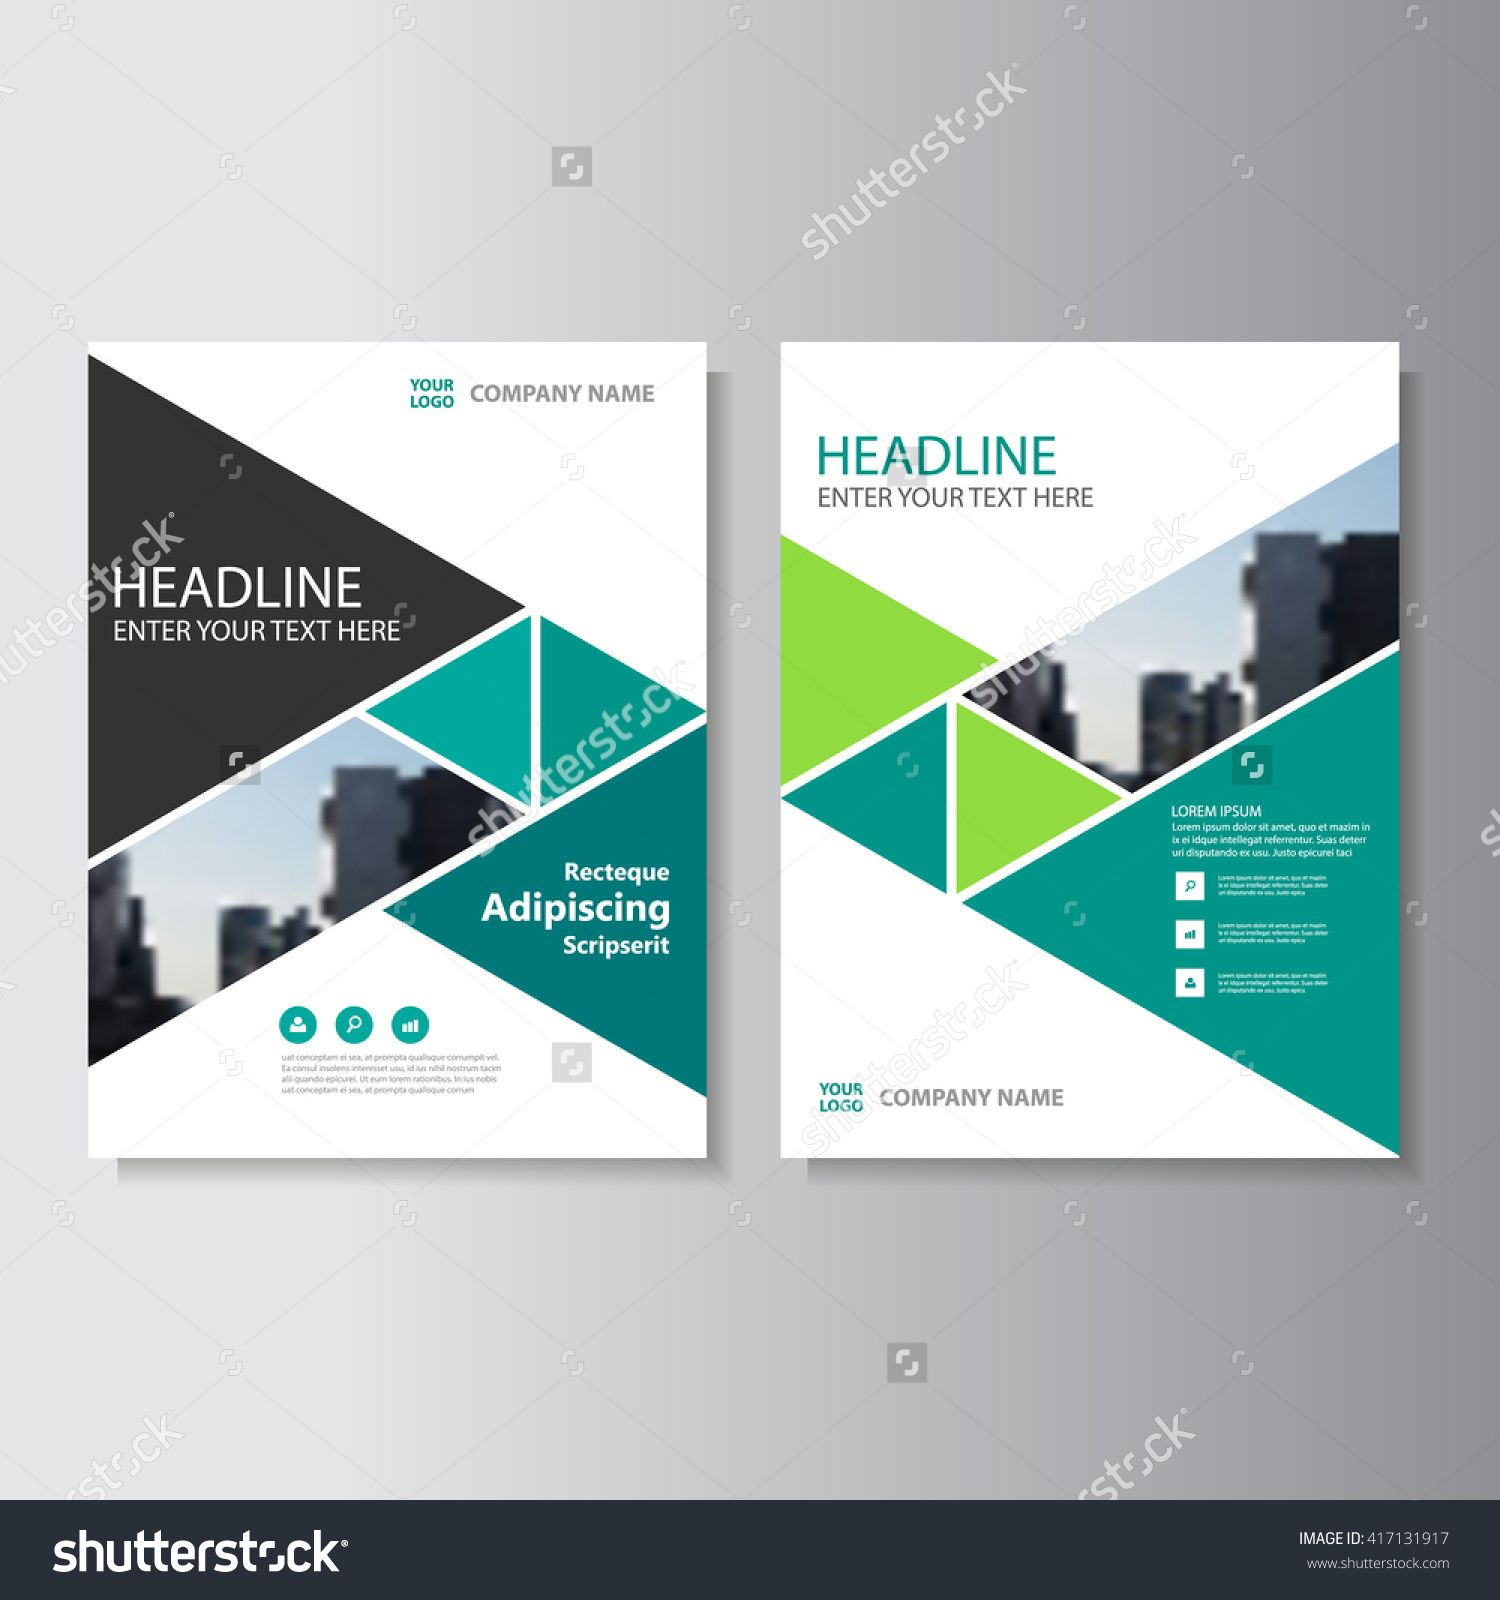 green triangle vector annual report leaflet brochure flyer green triangle vector annual report leaflet brochure flyer template design book cover layout design